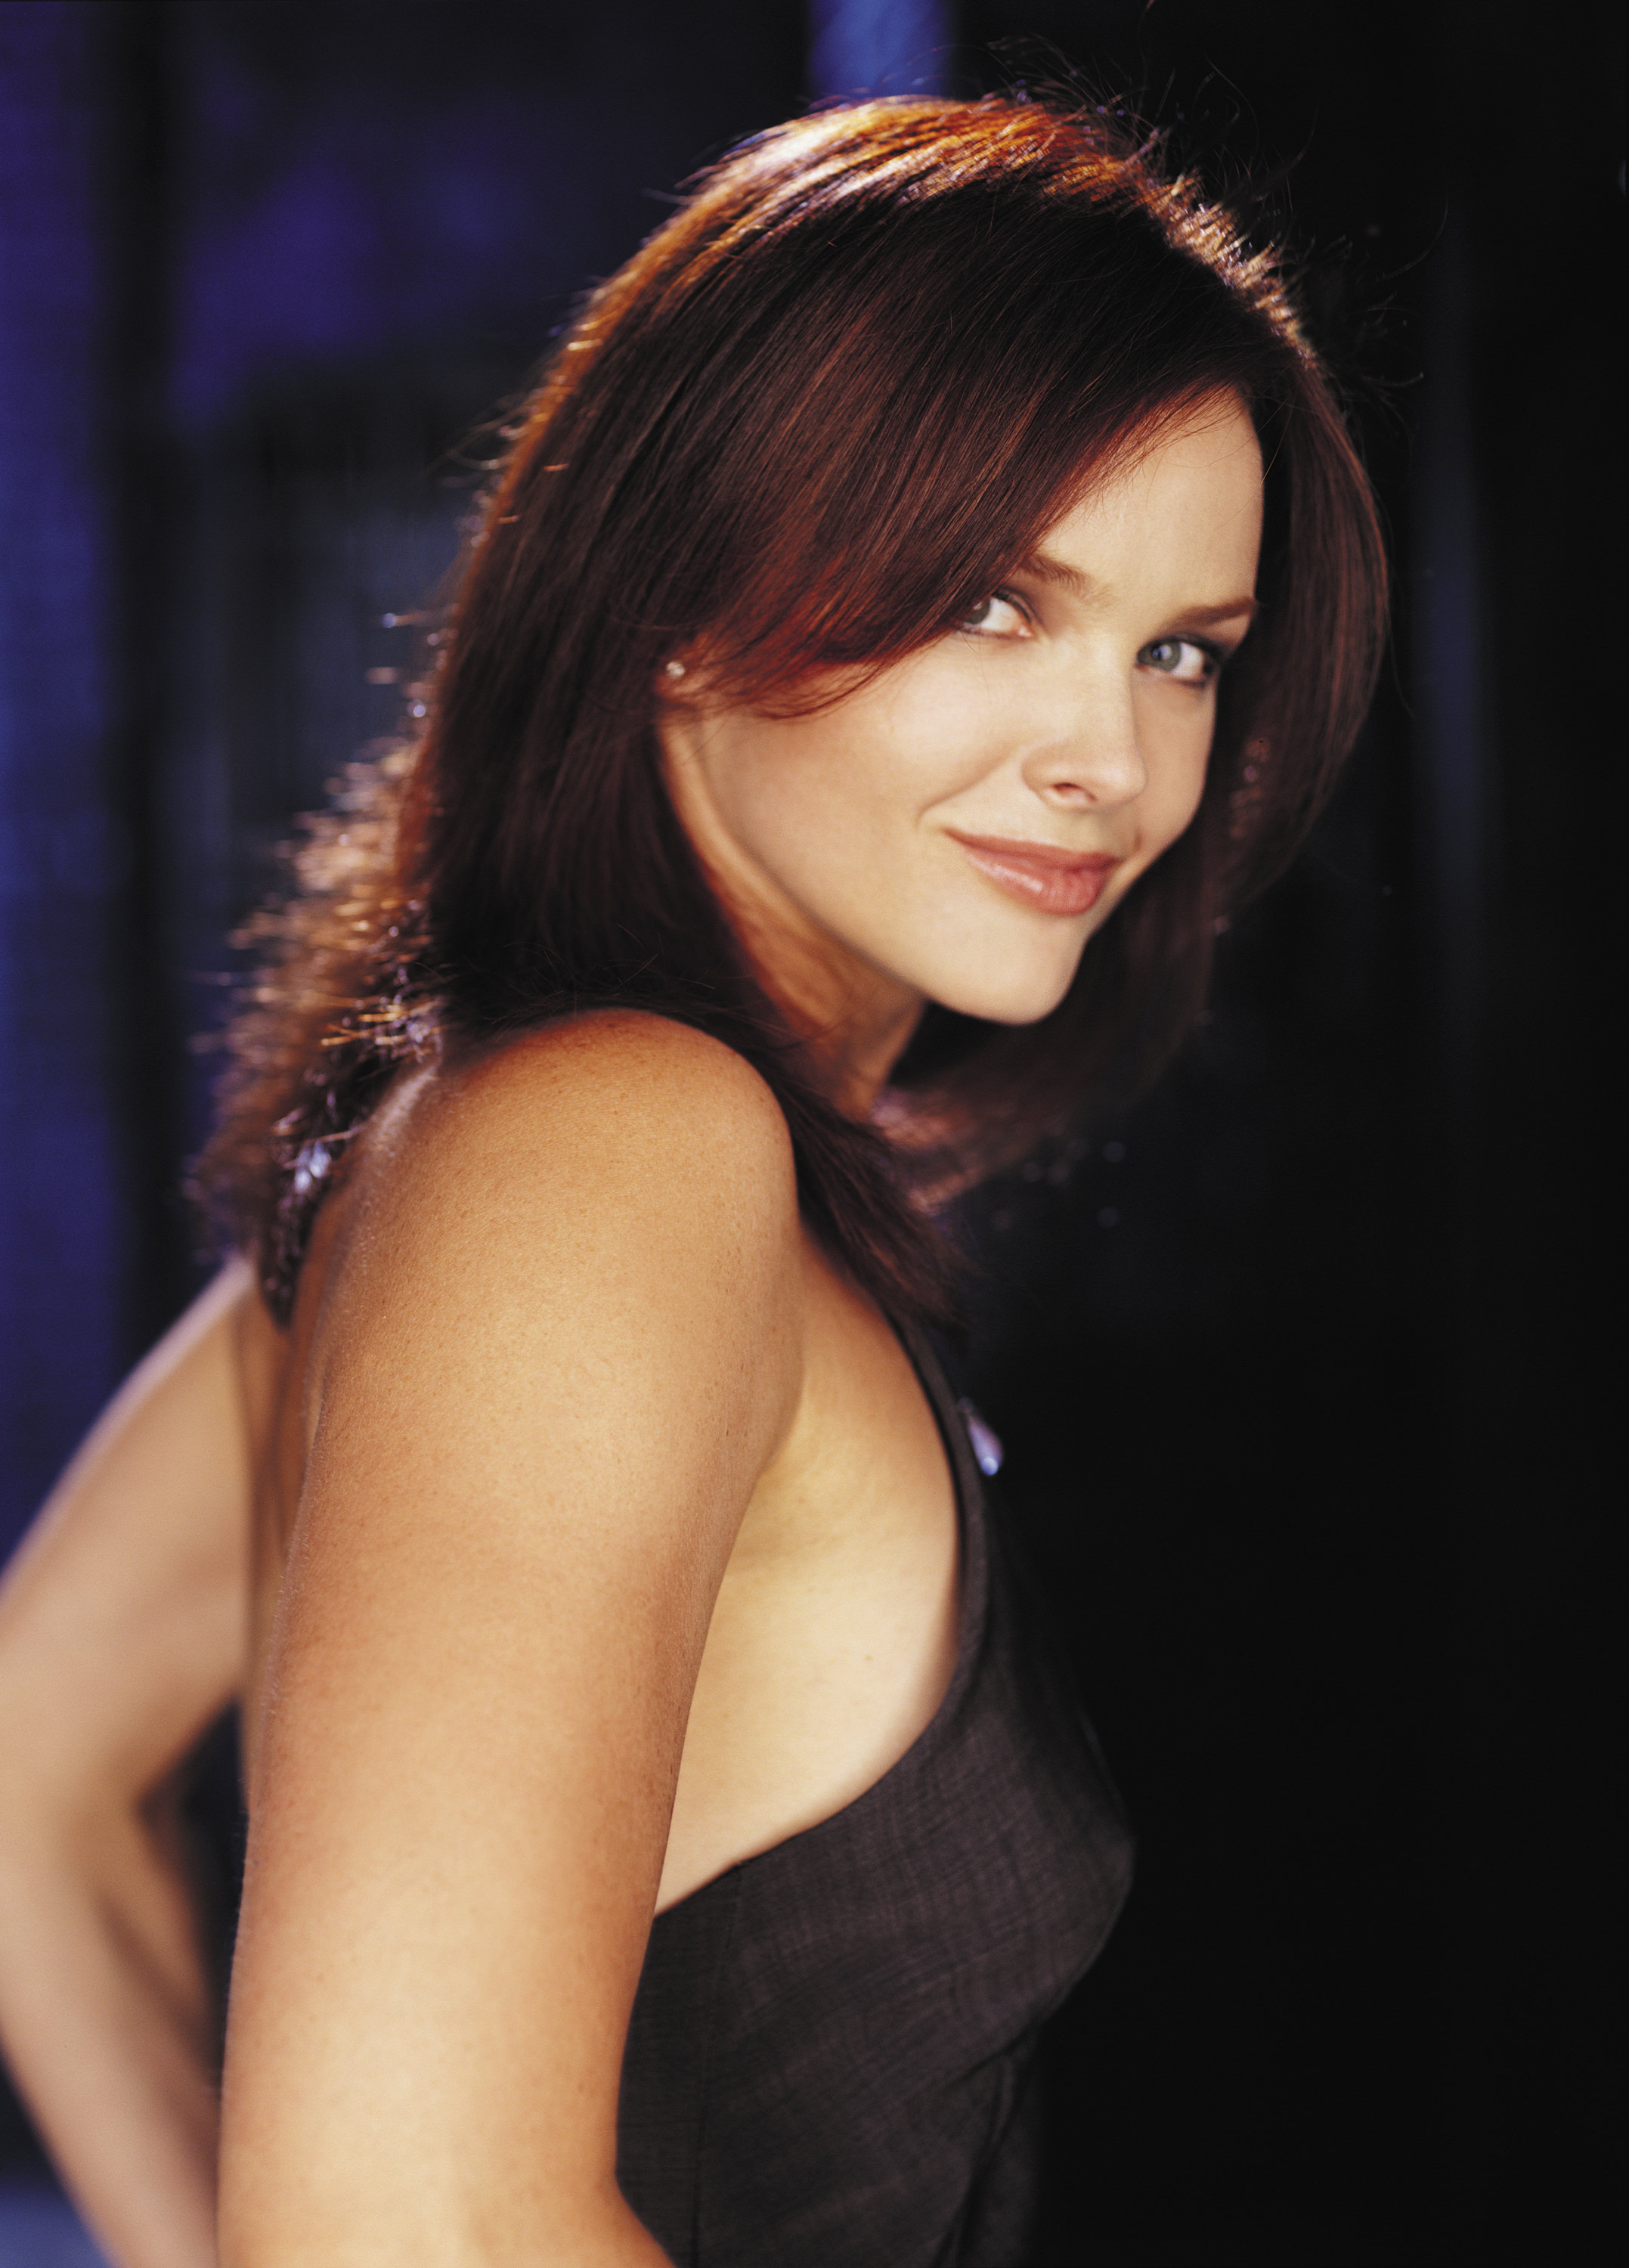 Dina meyer Wallpaper 2 With 2155 x 3000 Resolution ( 804kB )